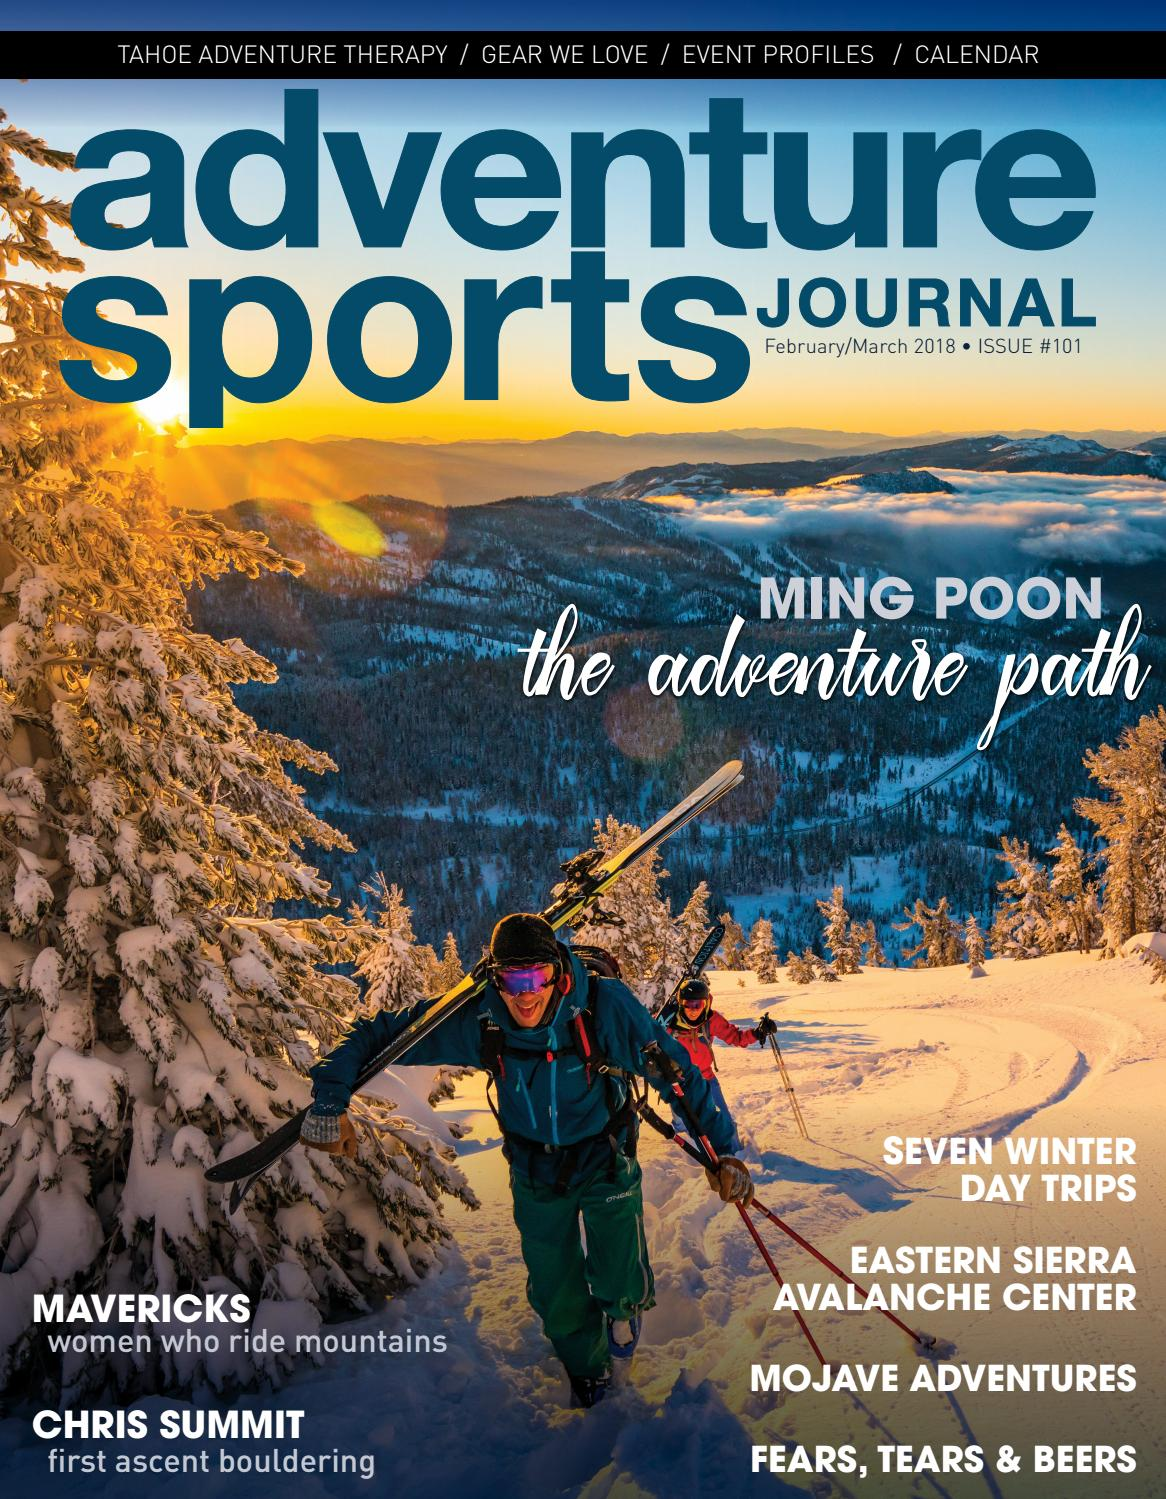 Adventure Sports Journal // Feb/March 2018 // #101 by